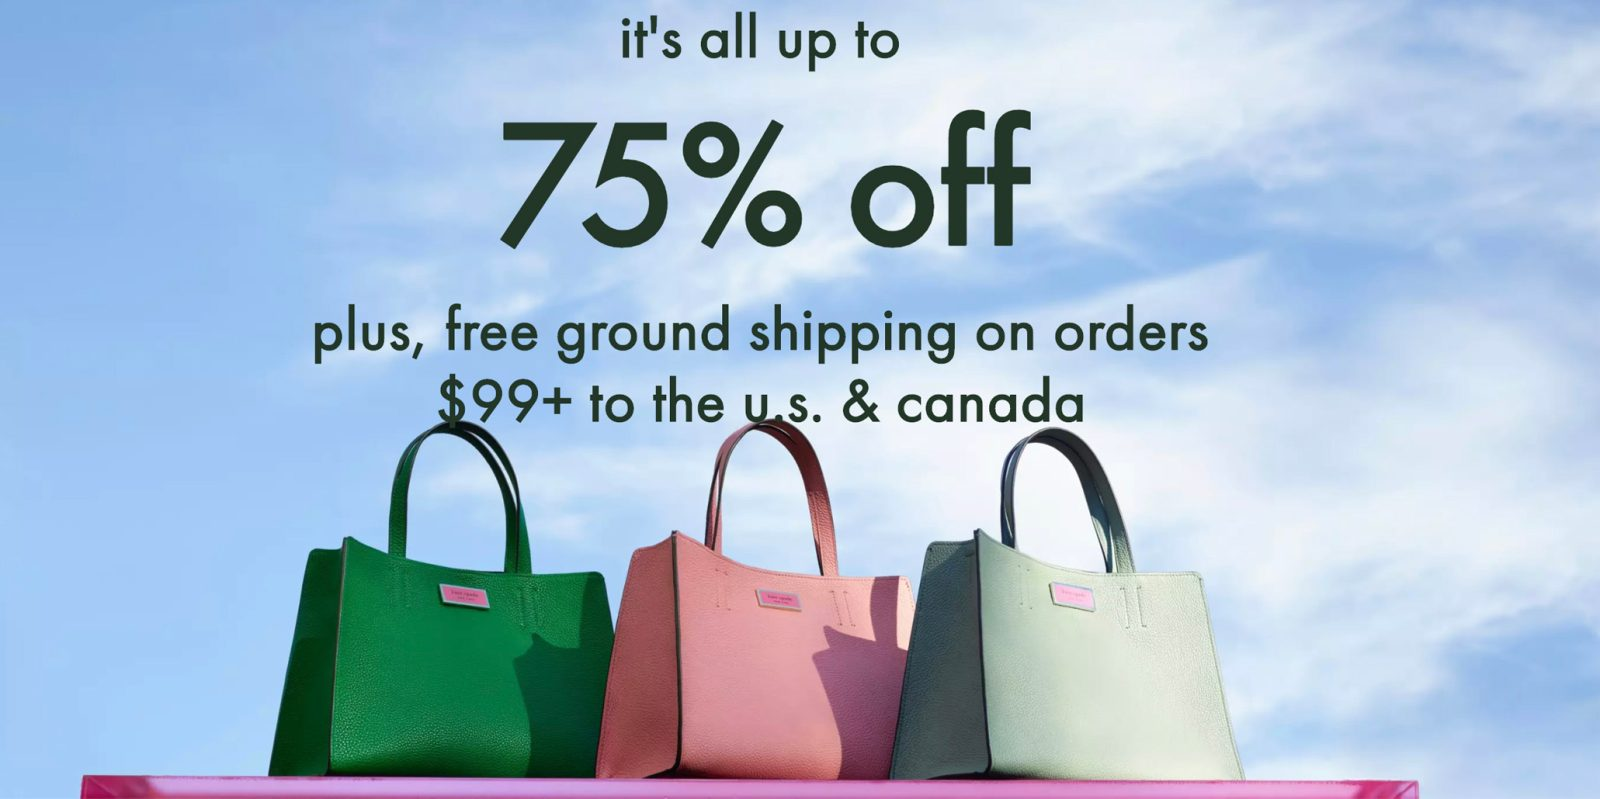 Kate Spade's Suprise Sale offers up to 75% off handbags, MacBook cases, more